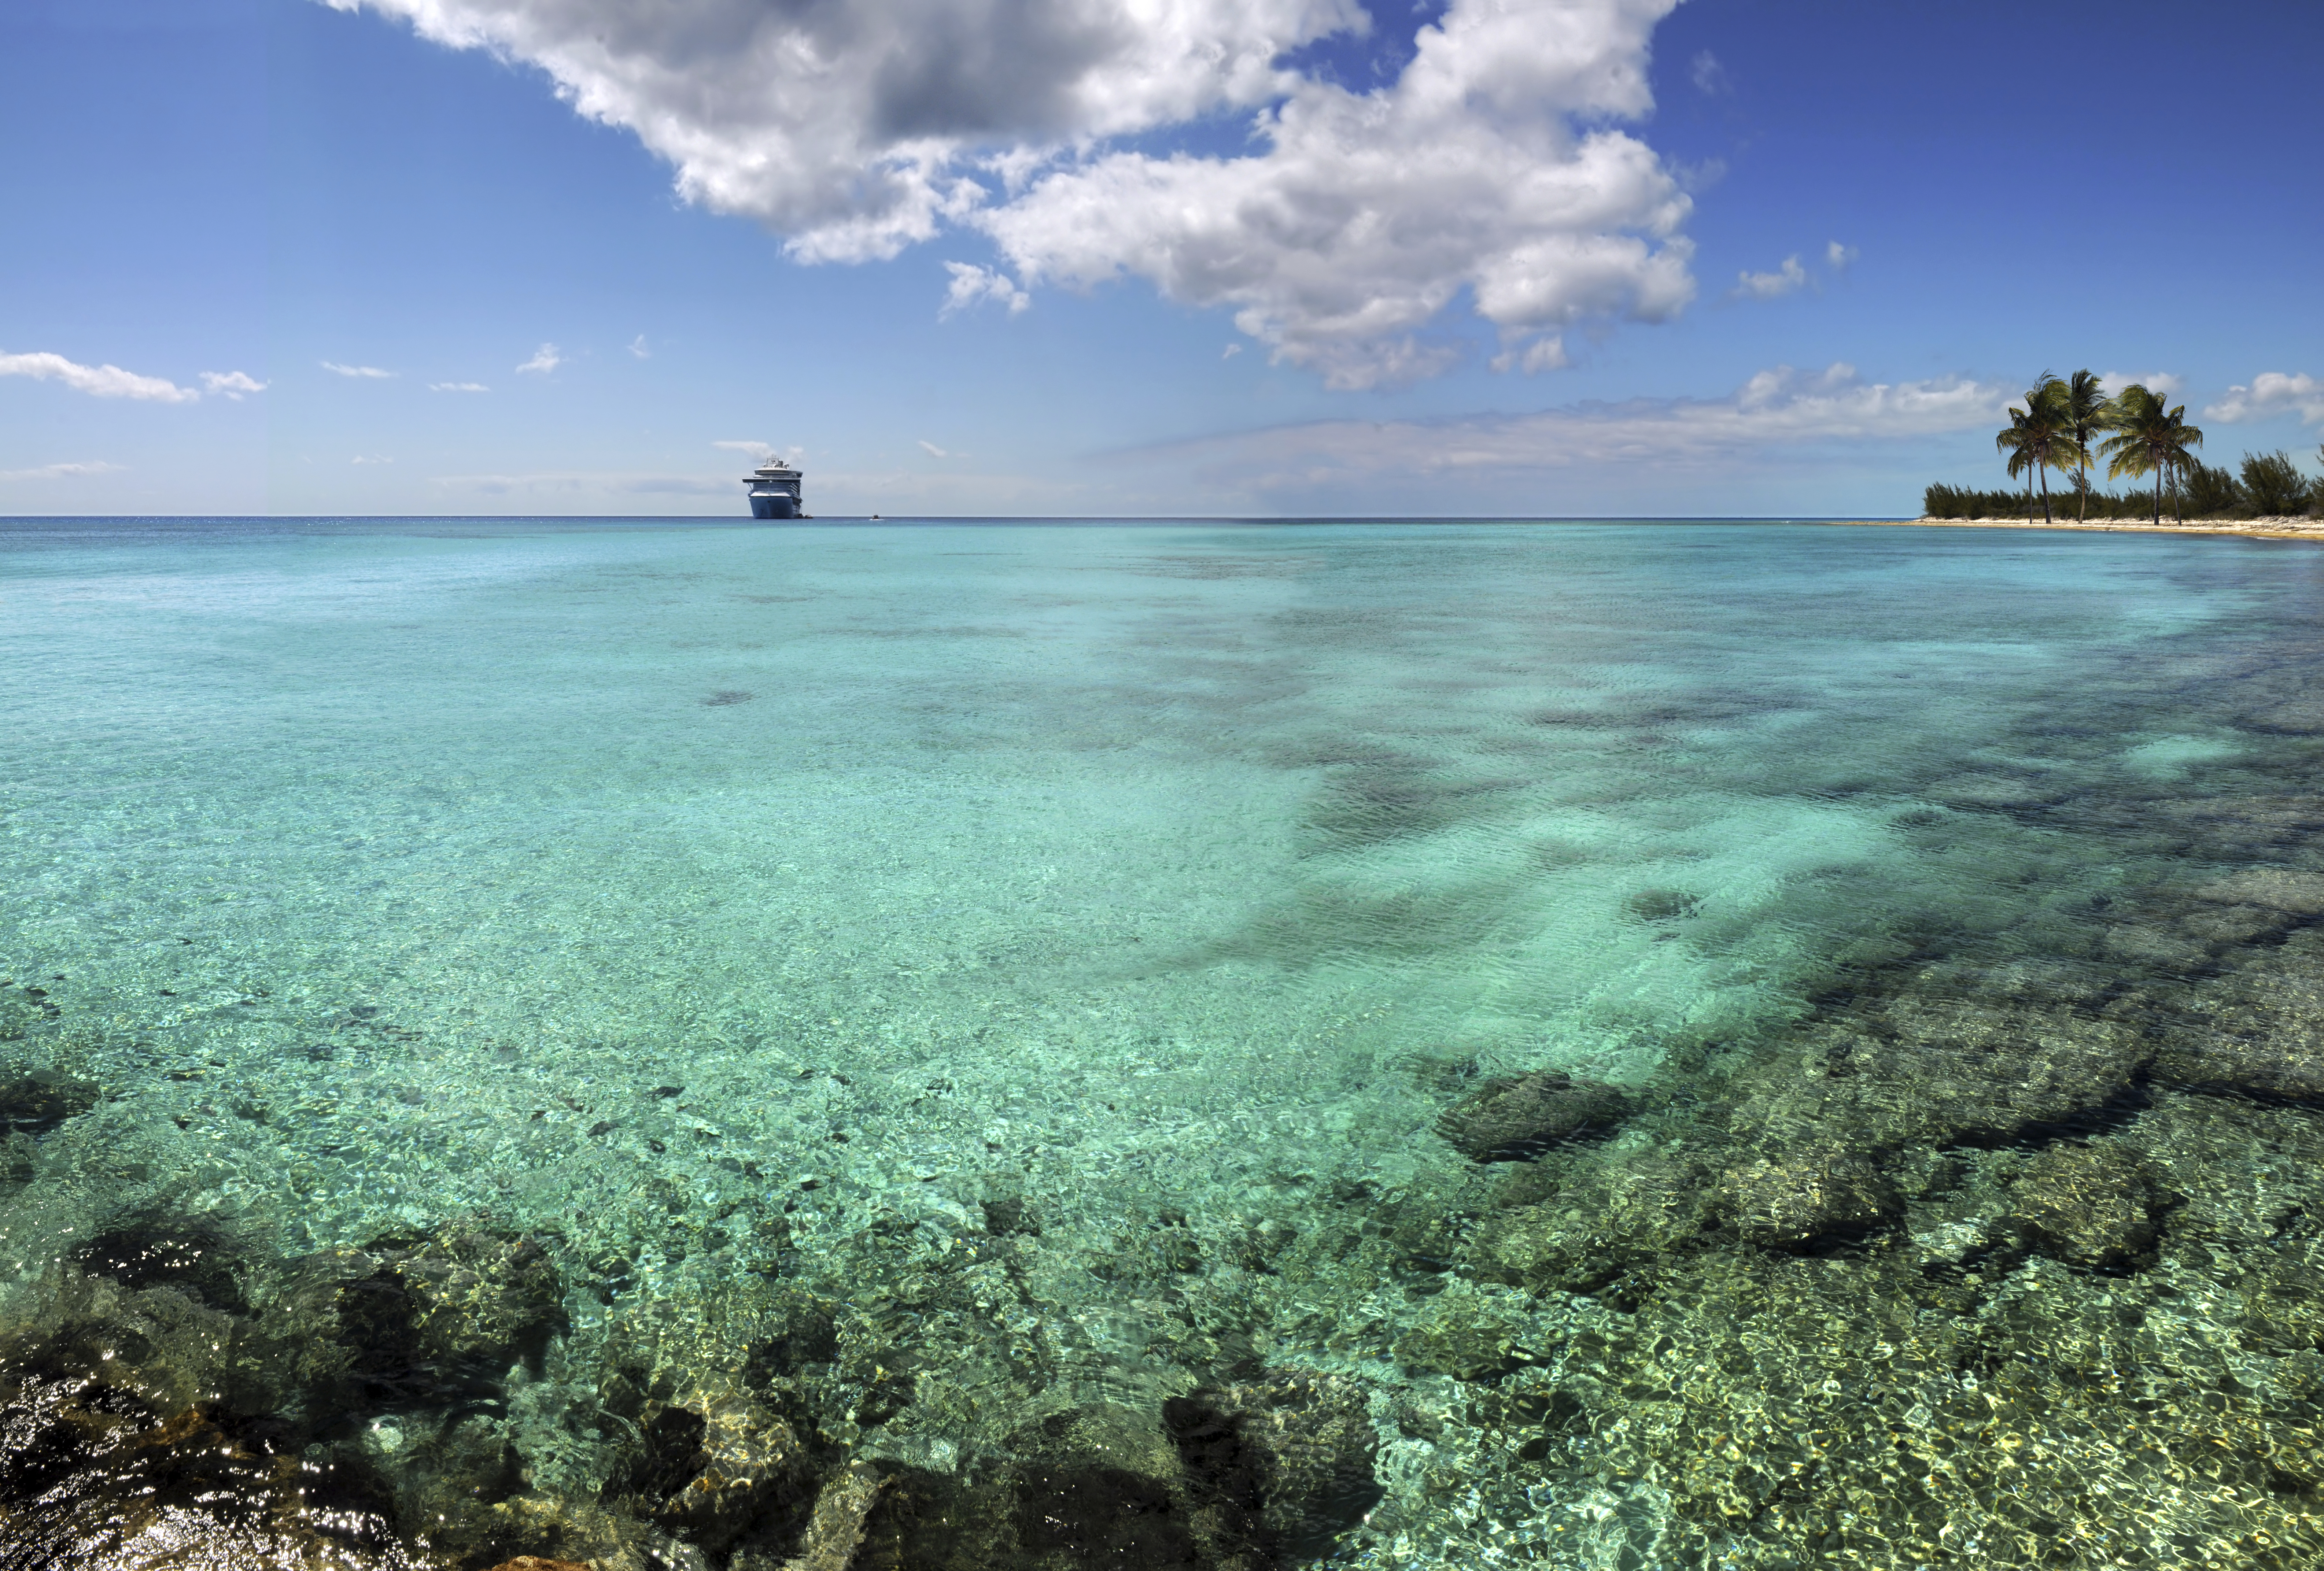 Coral reefs attract divers, Bahamas